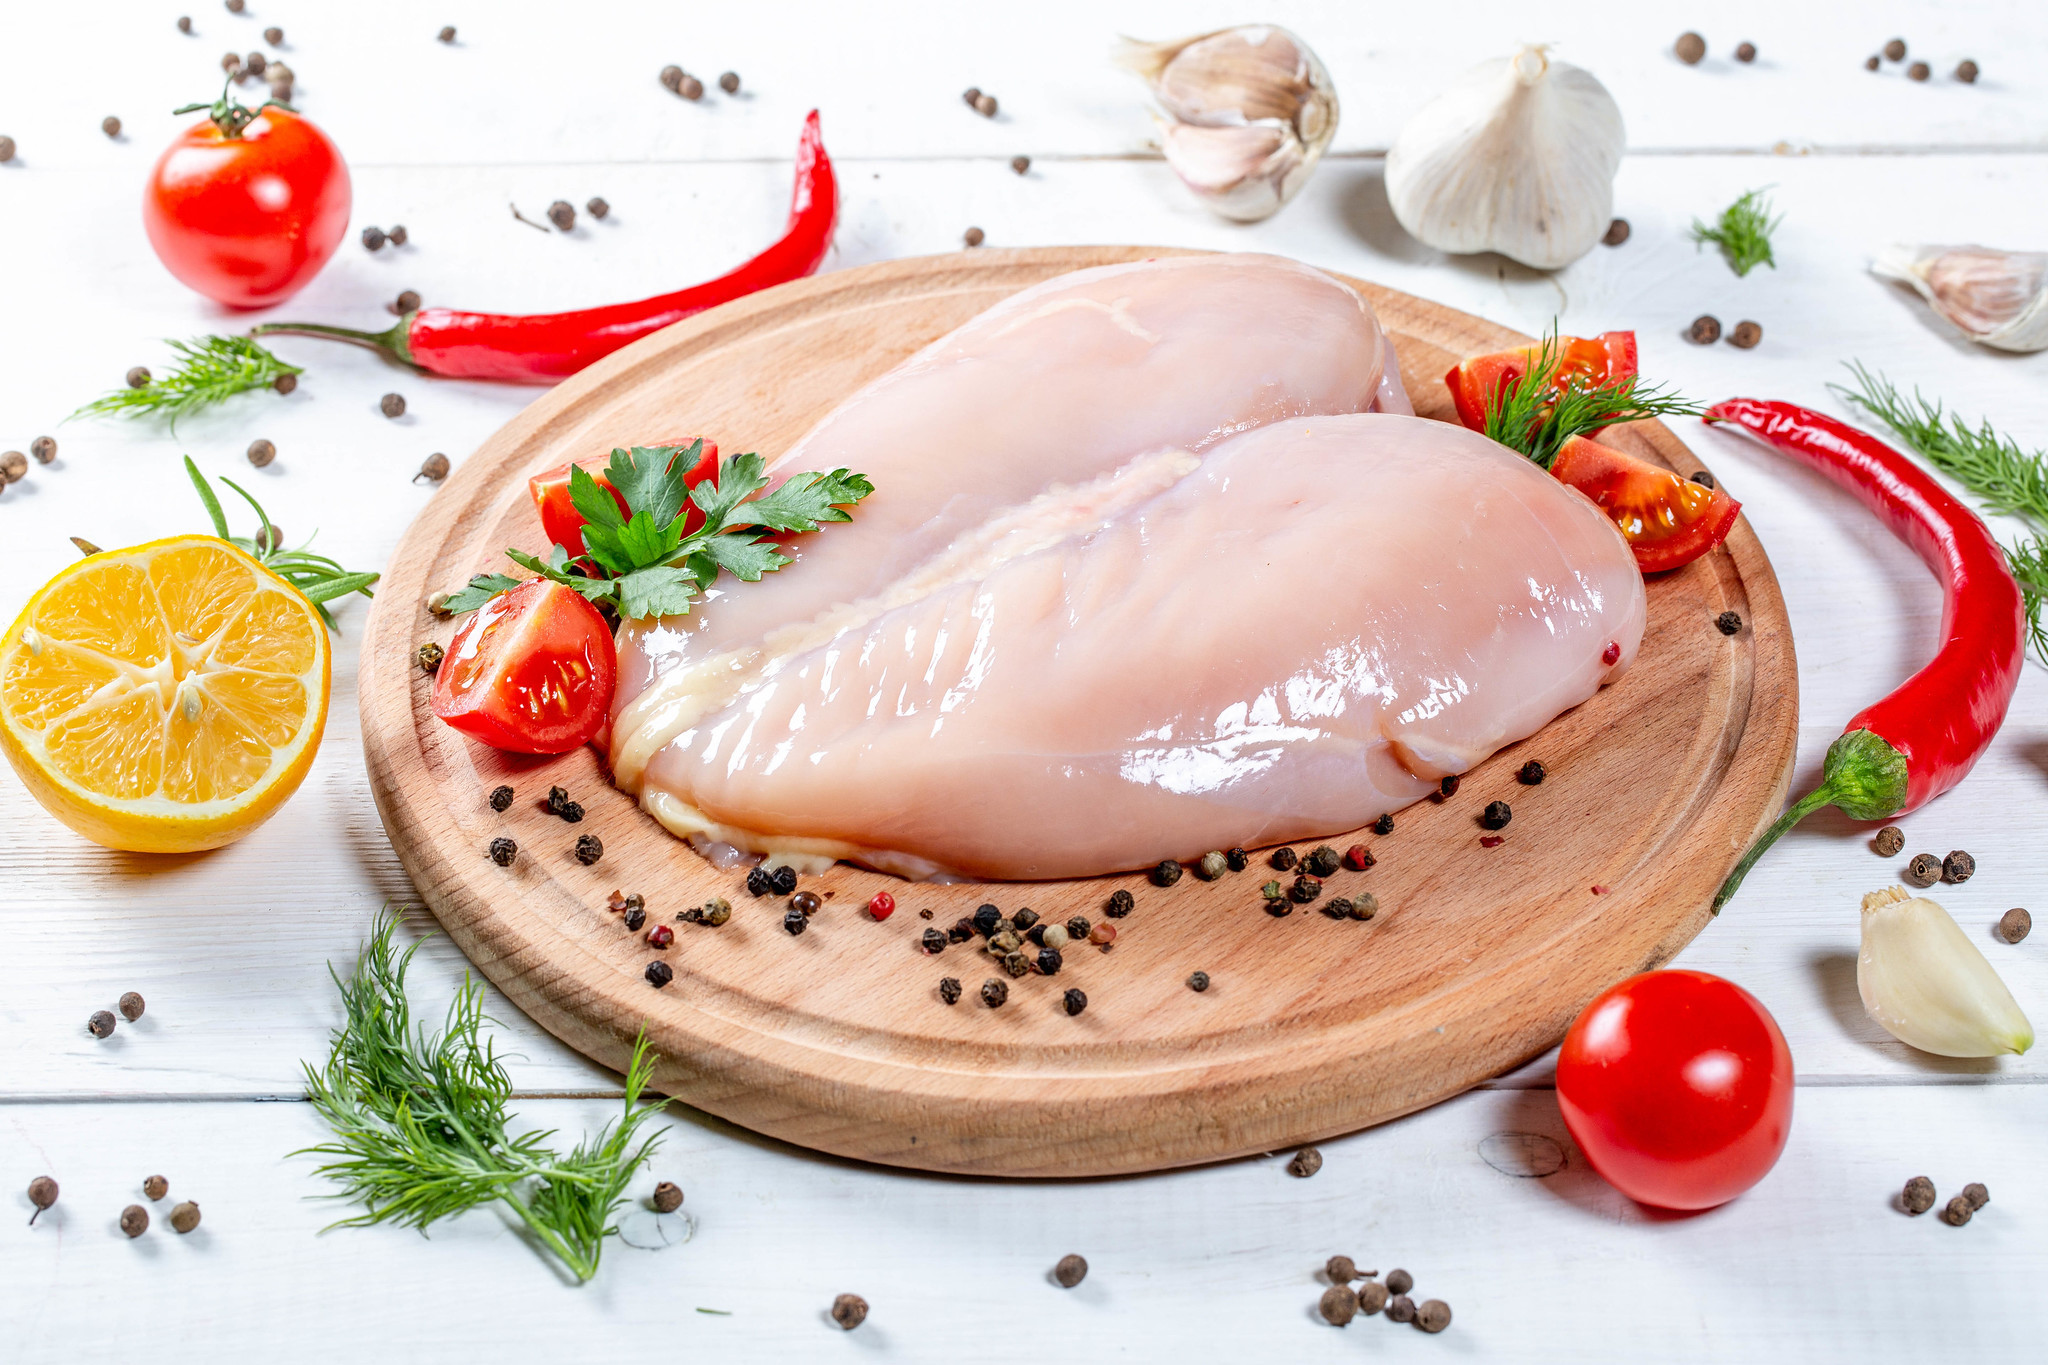 How in the world could chicken breasts cost $20 per pound!?